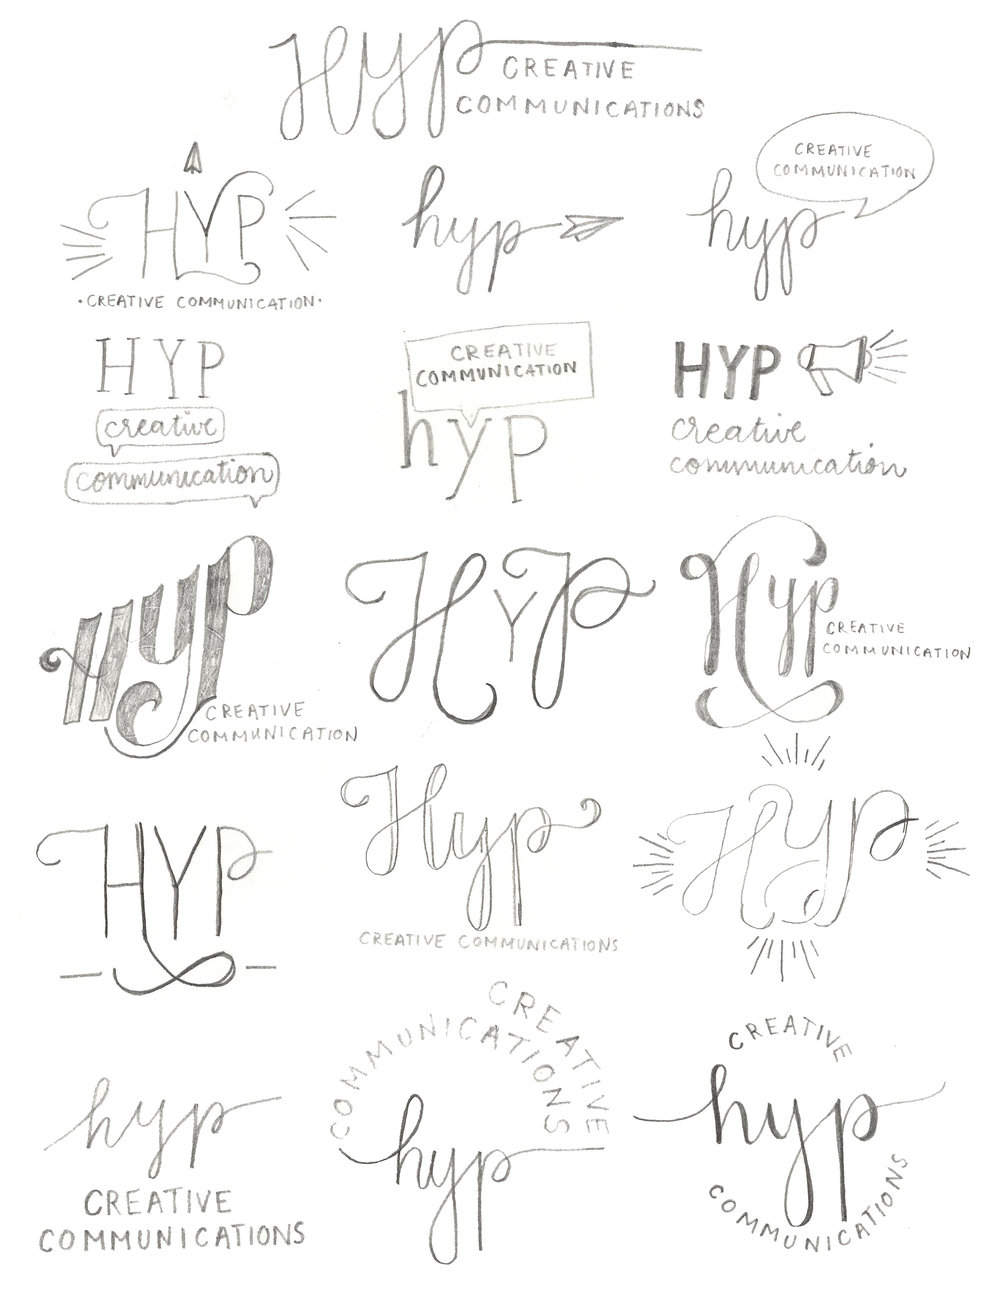 Public-Relations-Logo-Sketches.jpg